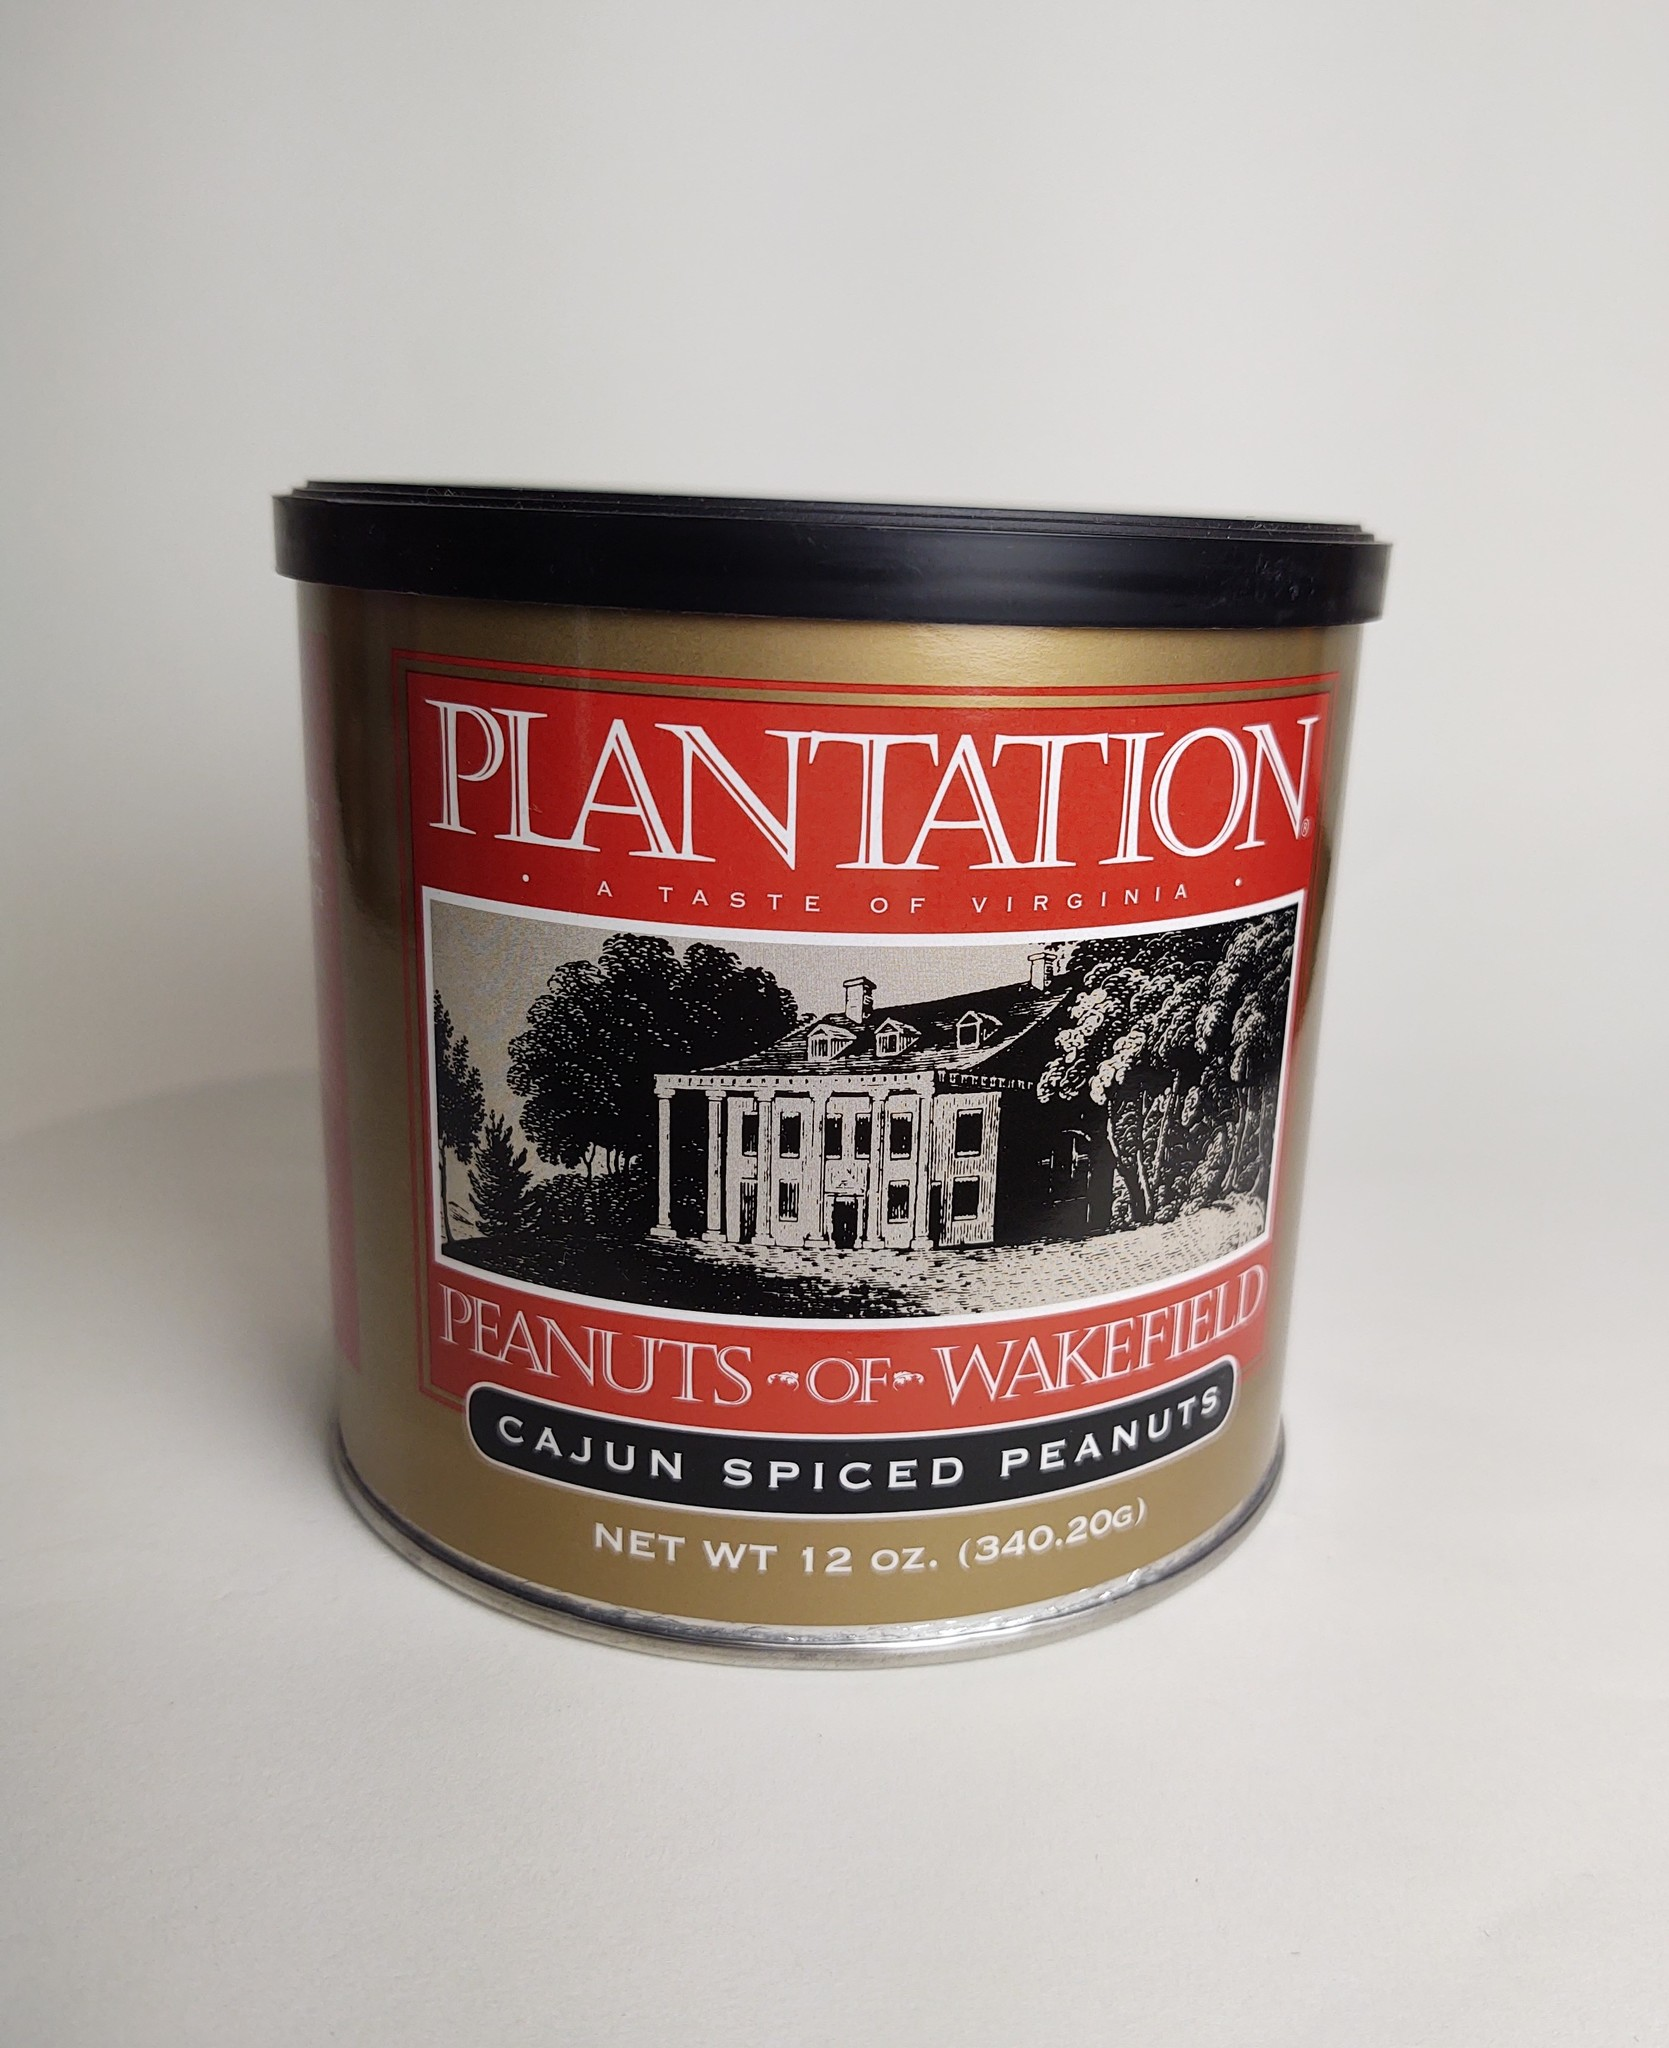 Plantation Peanuts of Wakefield Plantation Peanuts 12 oz. Cajun Spiced